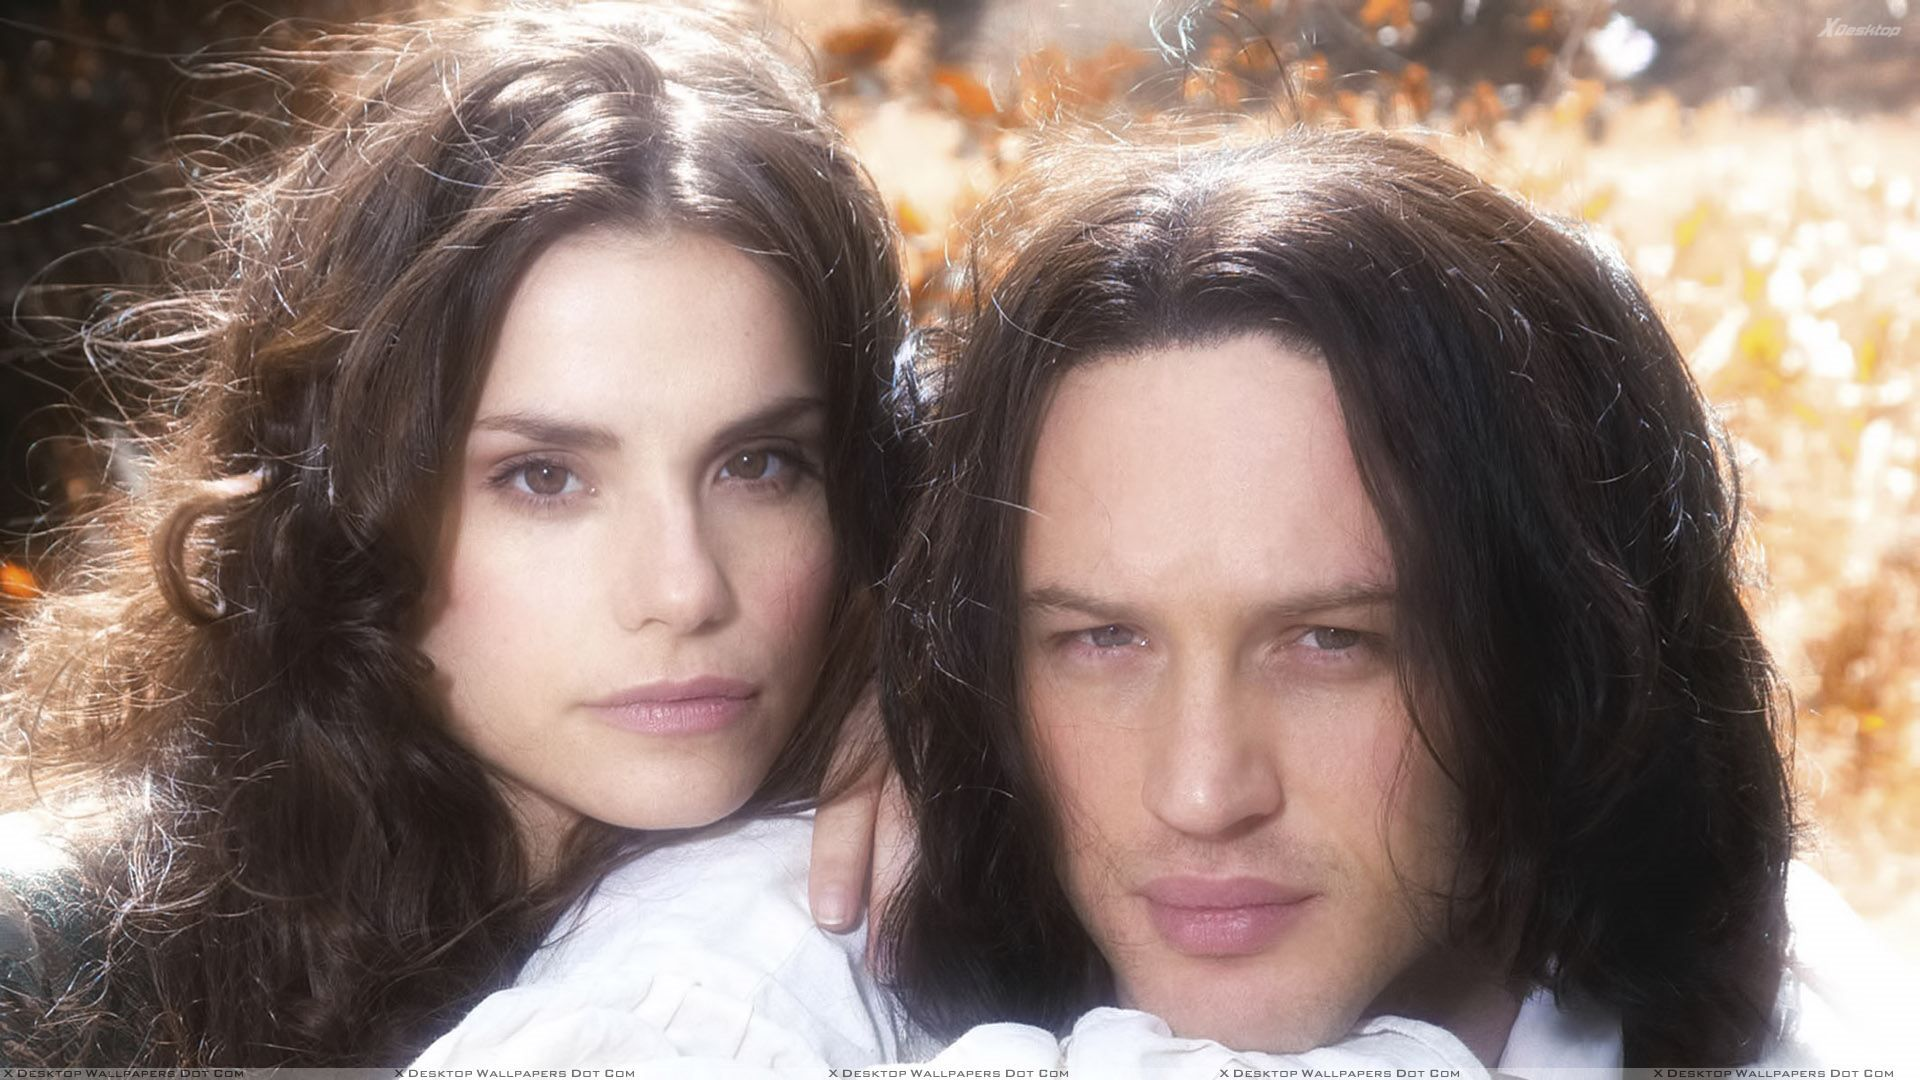 cathy and heathcliff i truly believe if cathy hadn t betrayed wuthering heights 2009 pbs part based on the classic novel by emily bronteuml wuthering heights is a story of love obsession hate and revenge